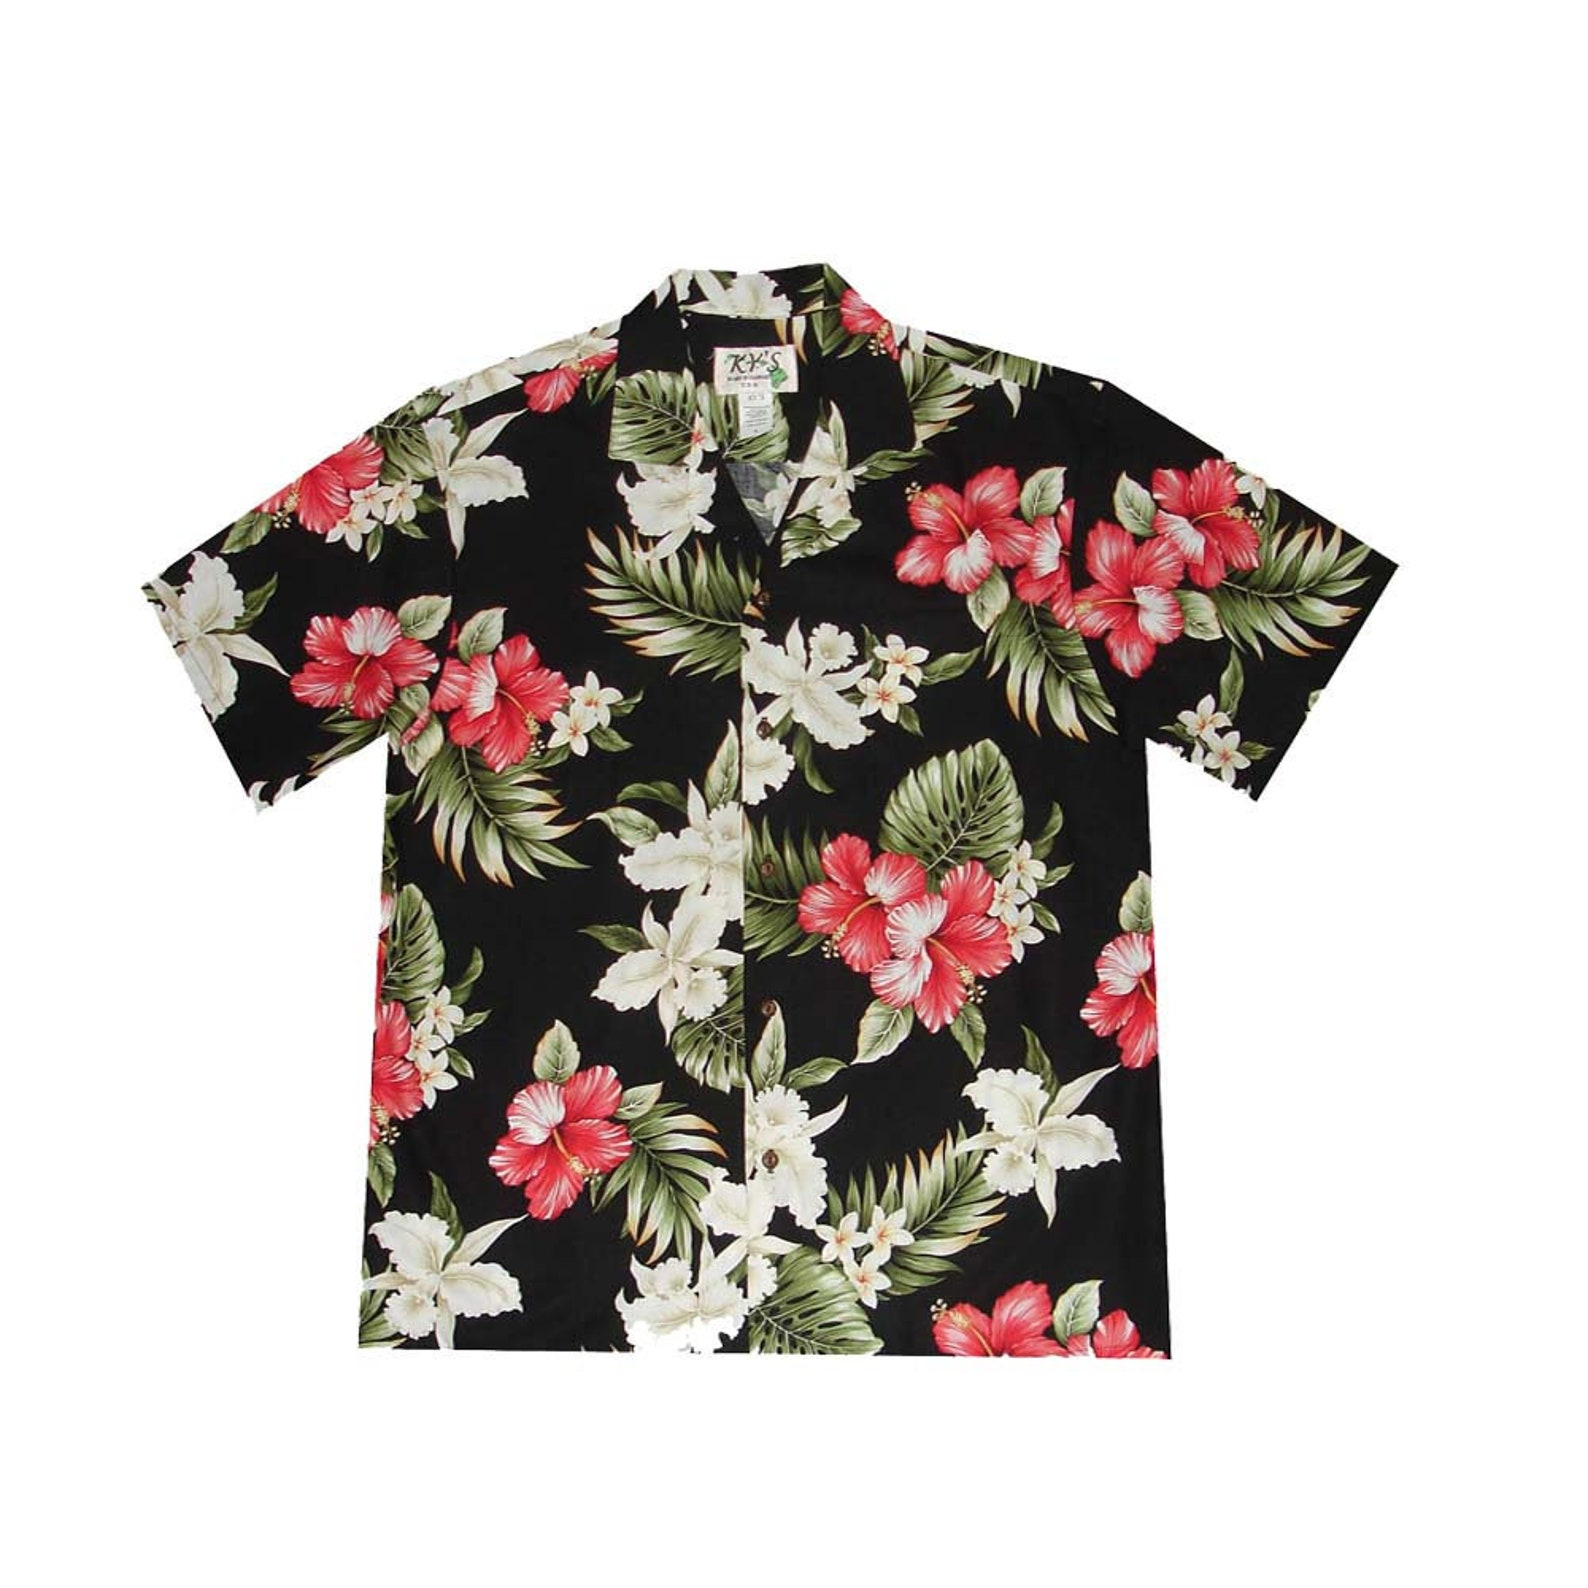 Dark blue Hawaiian shirt with a red, green and white floral design